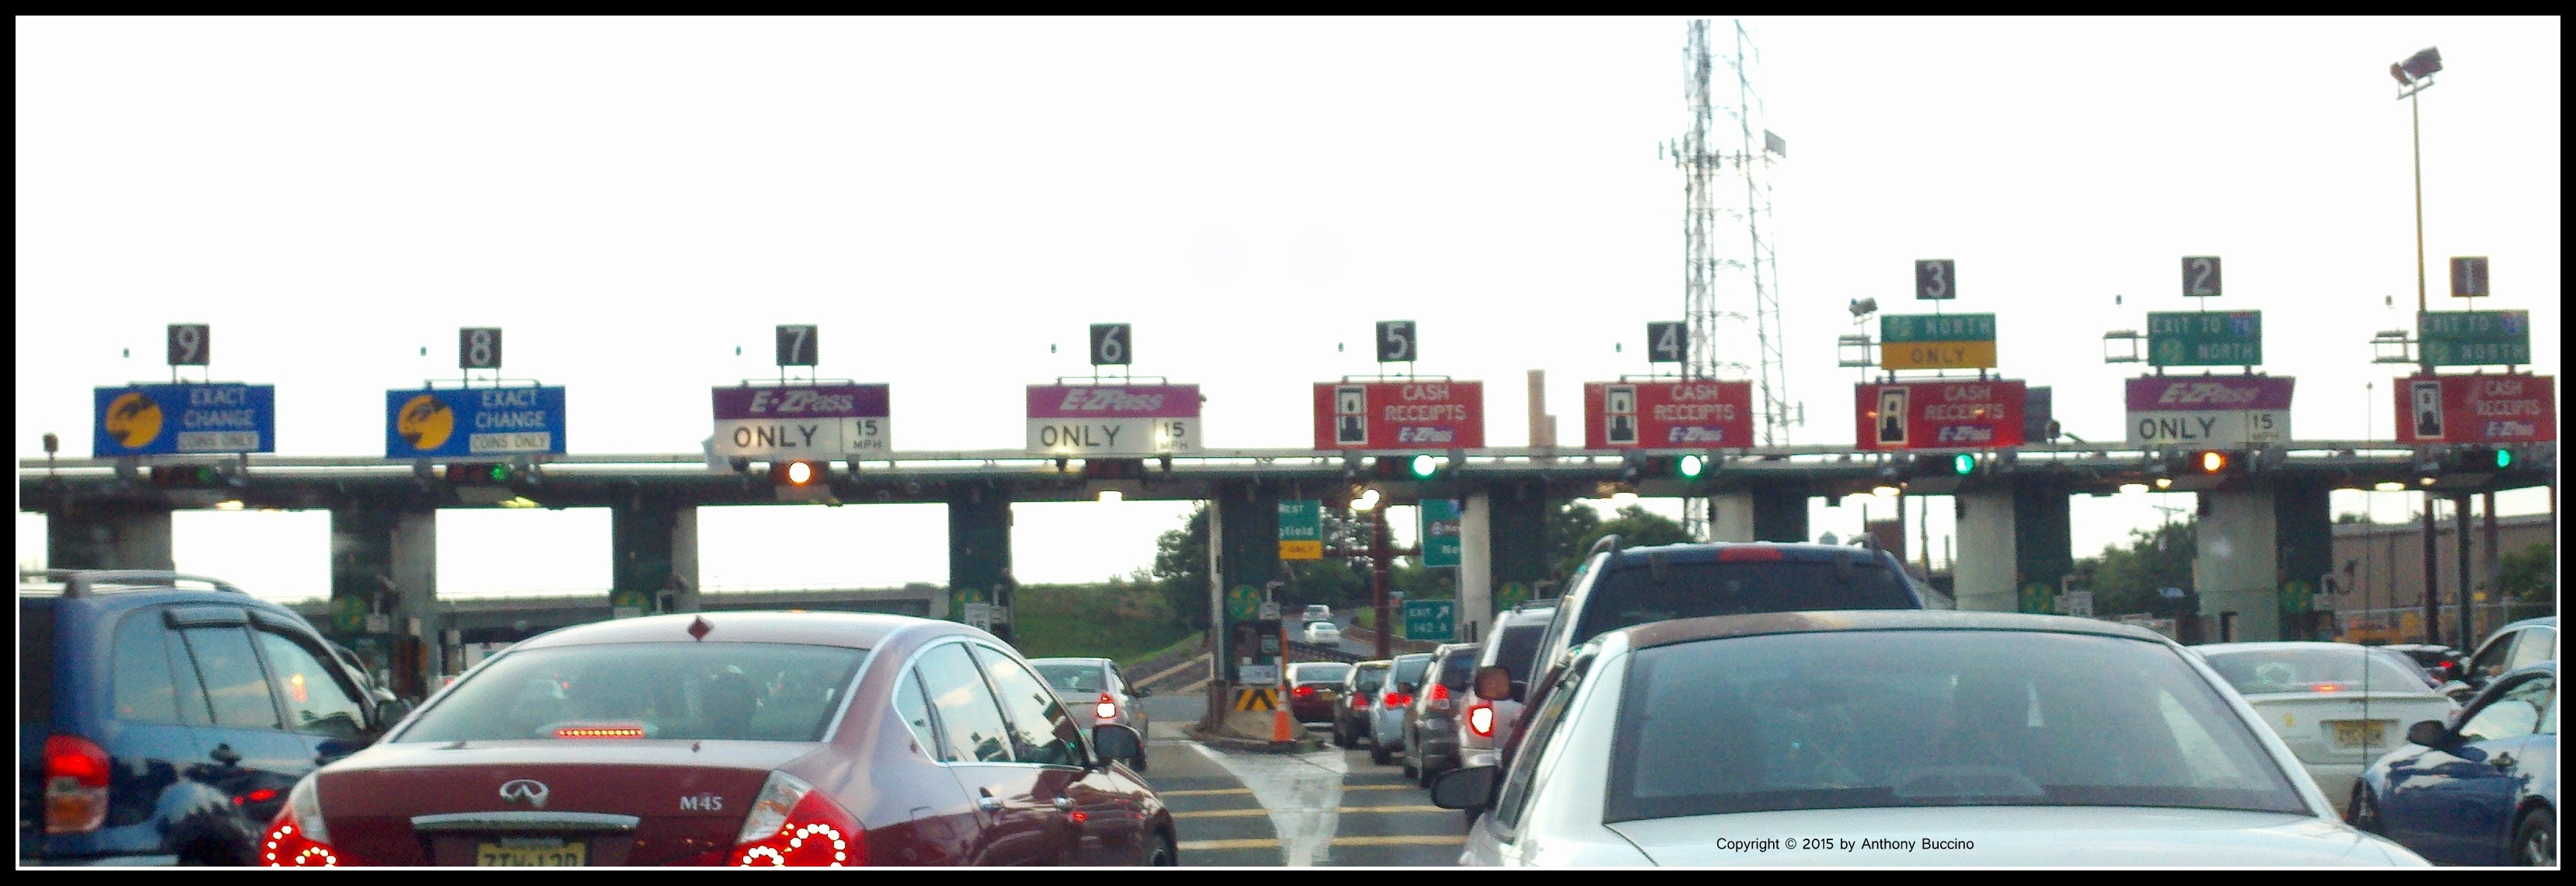 Garden State Parkway Tokens Pay Tolls To Hell